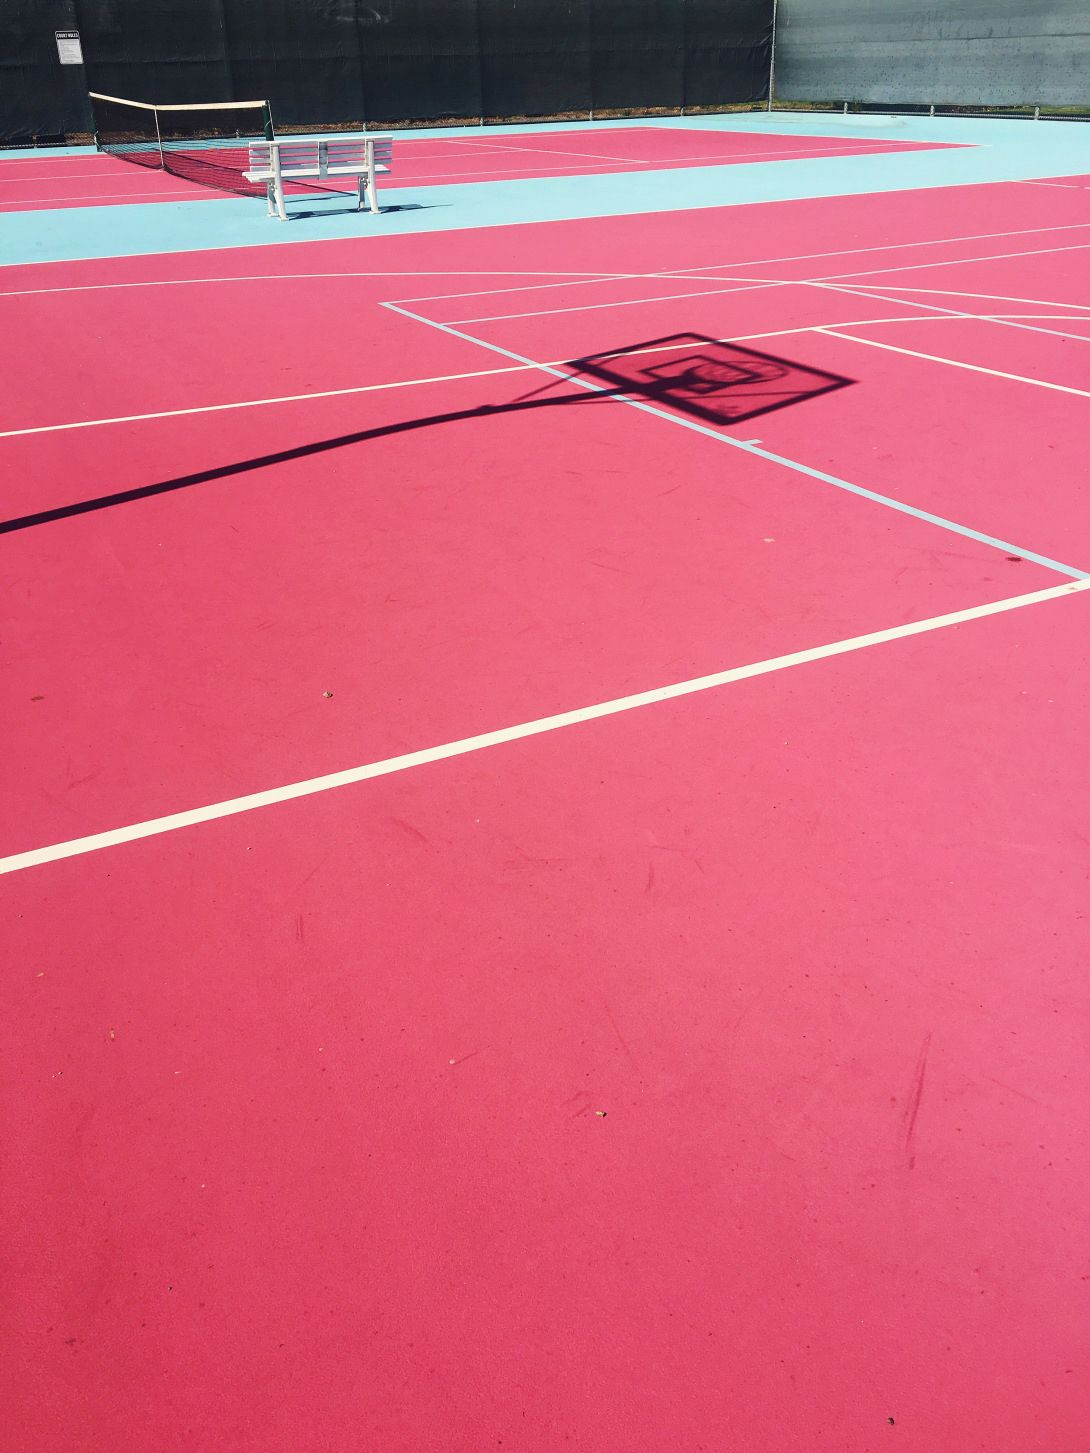 Madonna Inn S Pink And Blue Tennis And Basketball Courts The Sporting Life Aesthetic Images Tennis Court